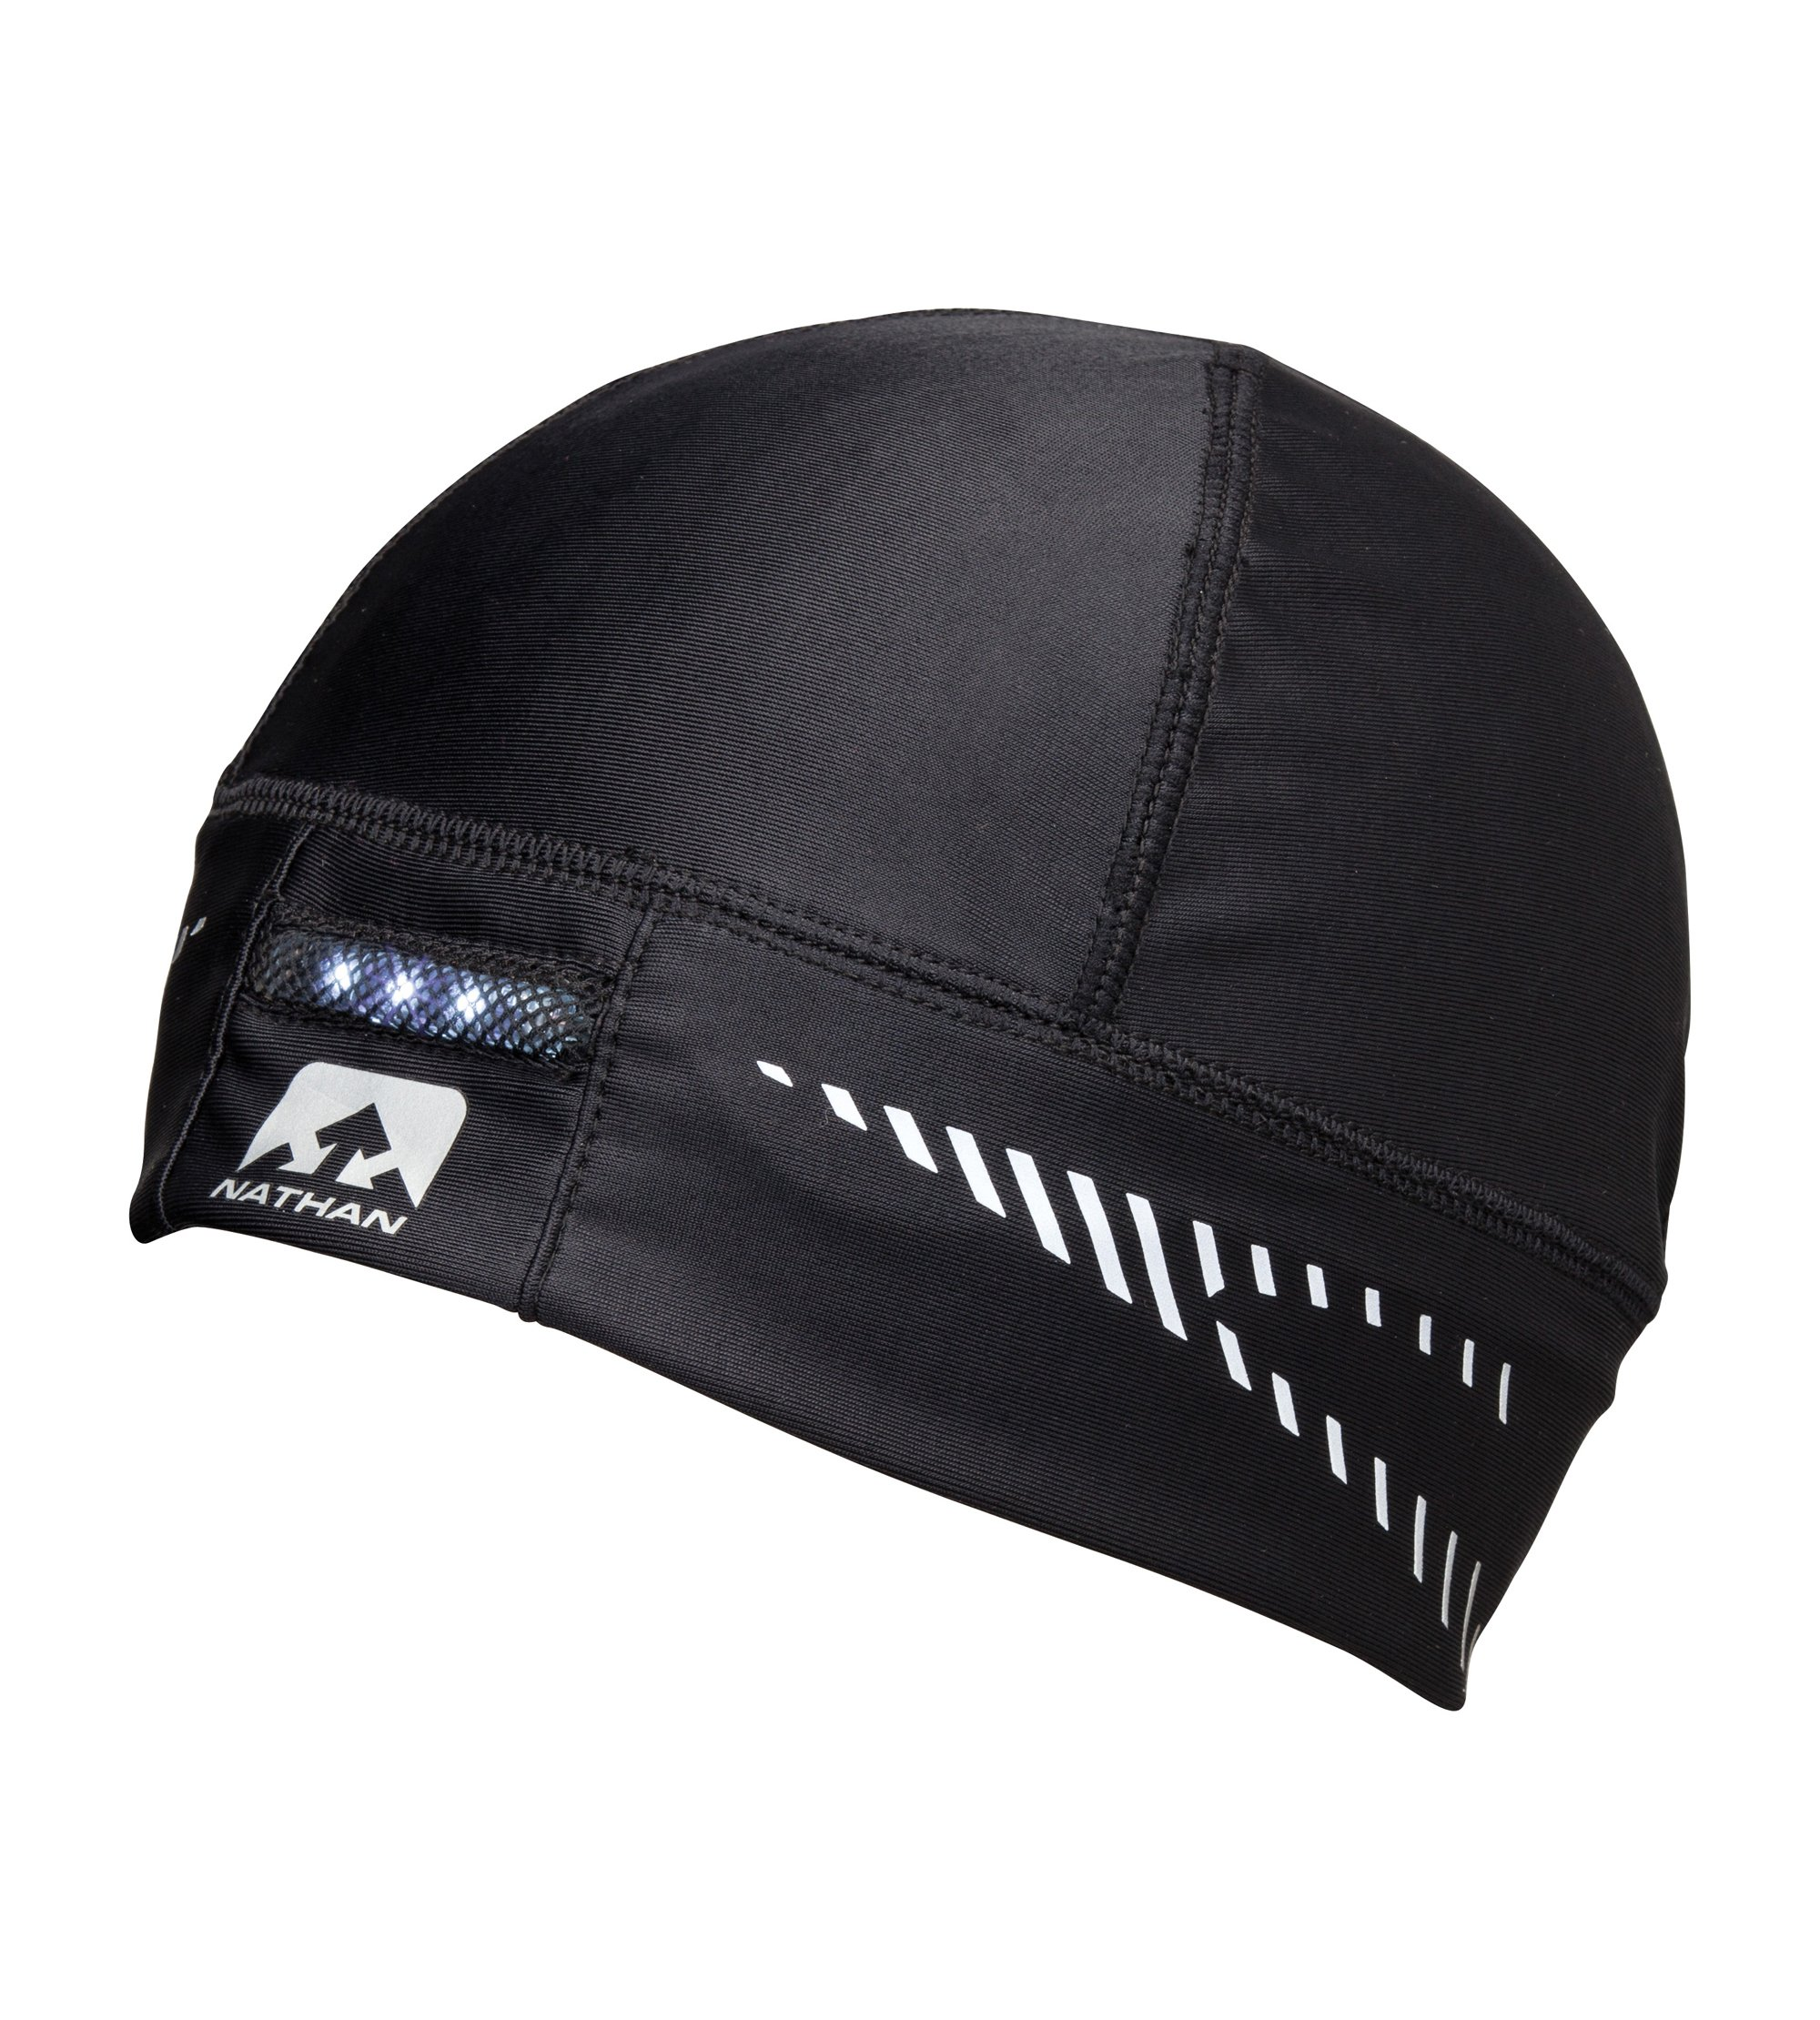 Nathan DomeLight Beanie, Large/X-Large, Black